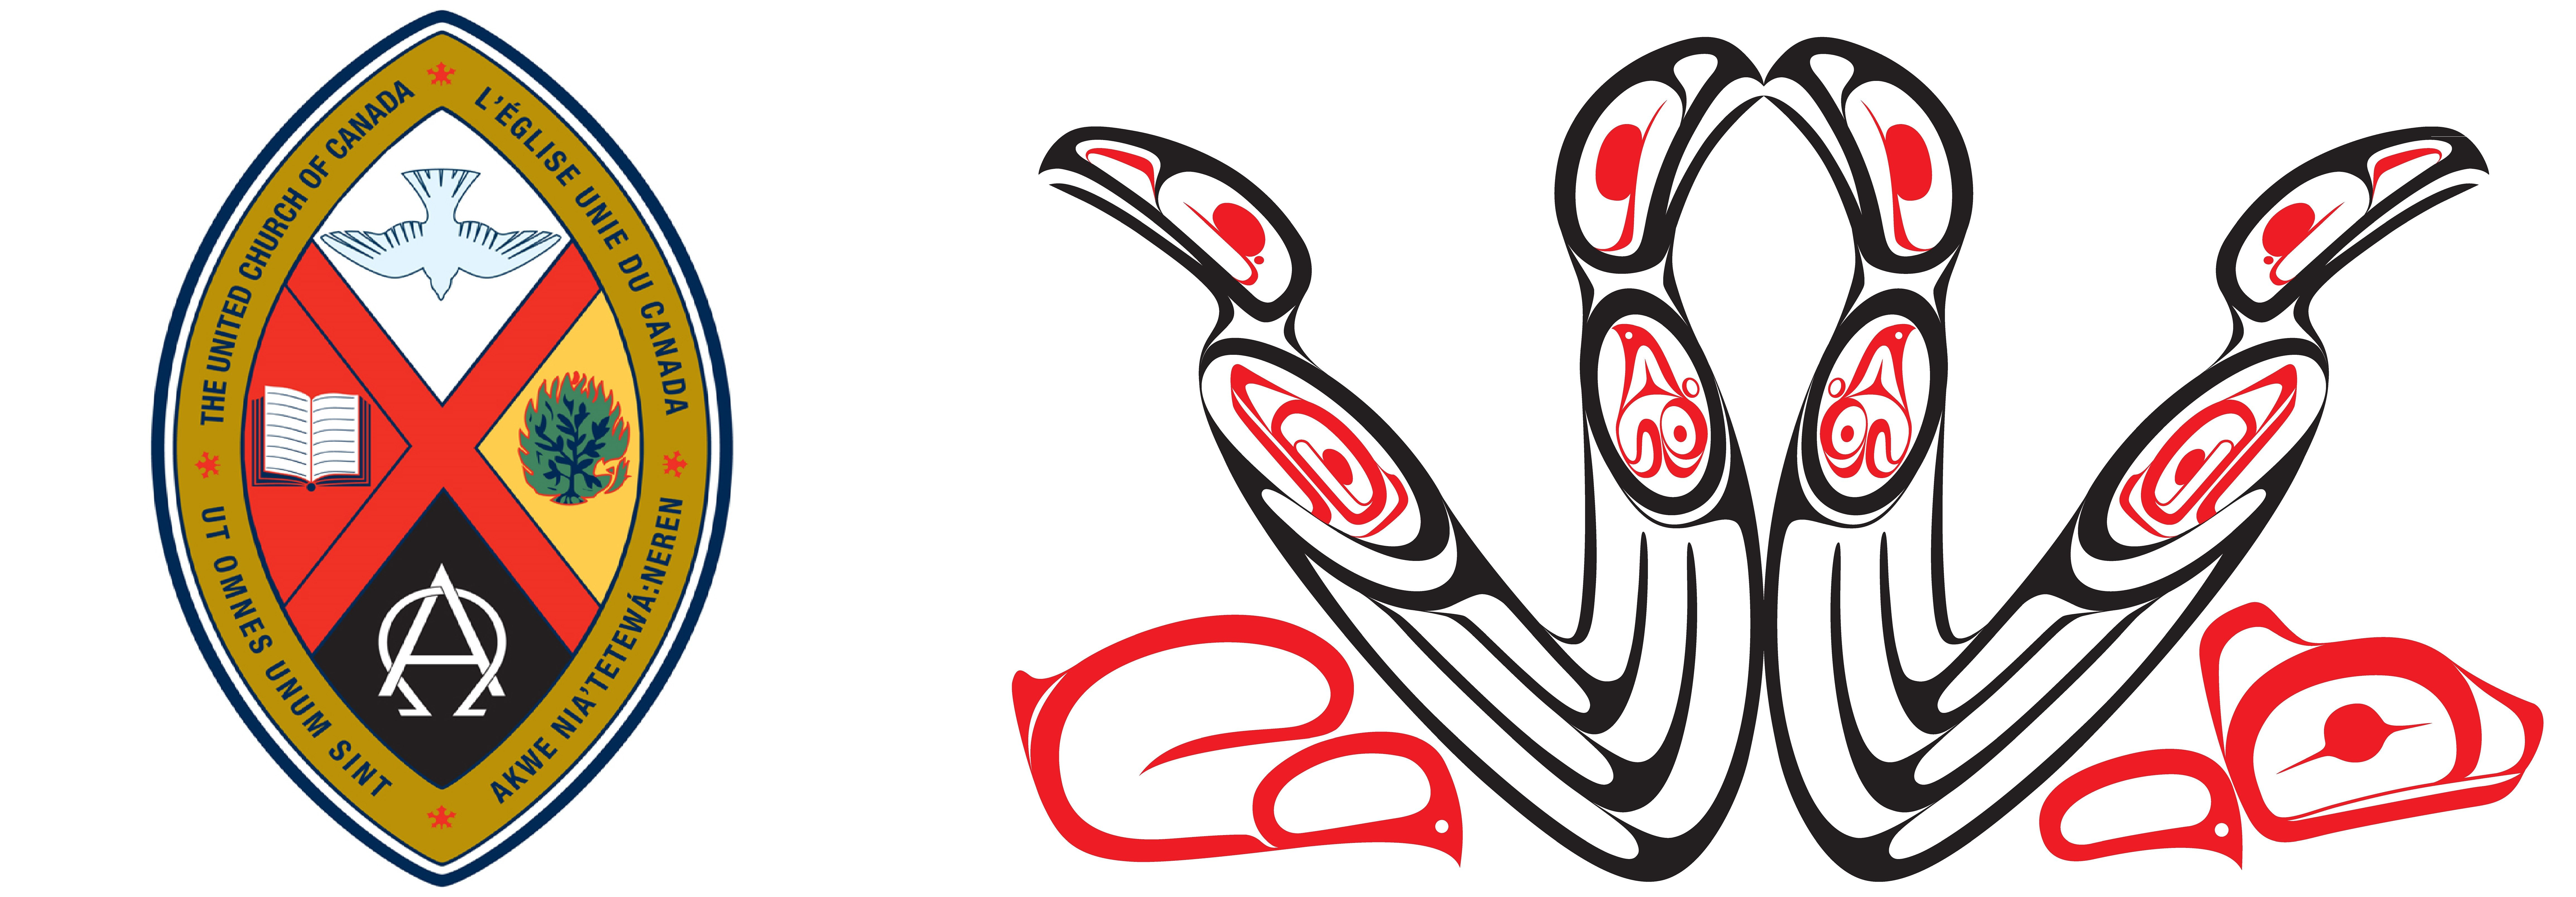 2019 National Indigenous Spiritual Gathering